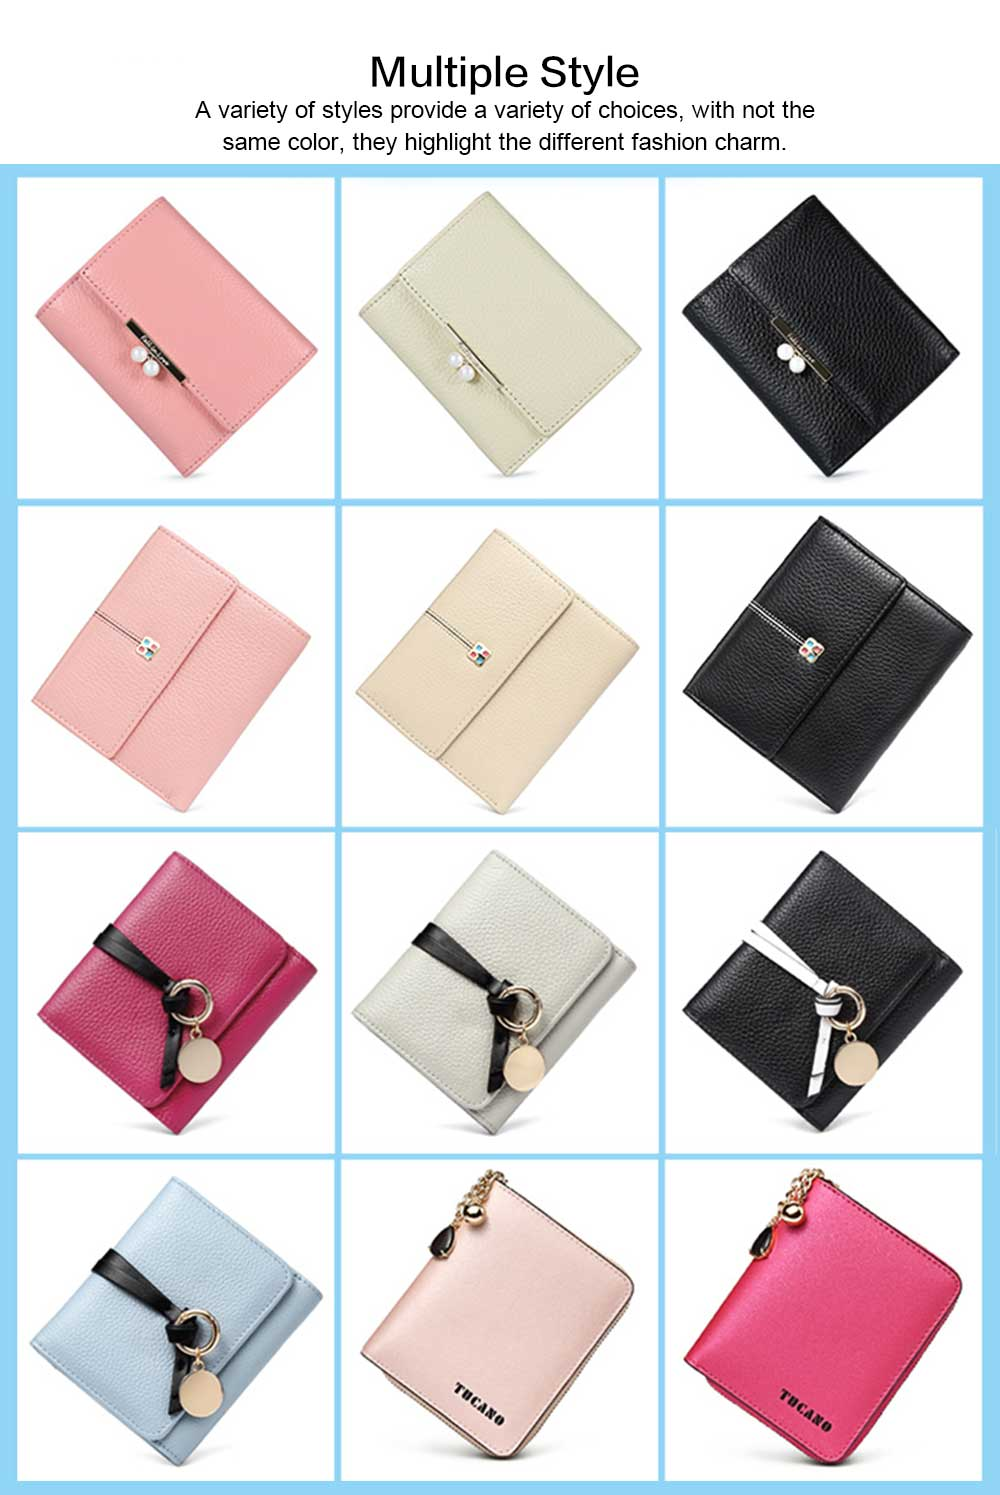 2019 New Designed Women Purse New Designed INS Purse Short-style Fresh Folding Purse for Women Lady Girl 2